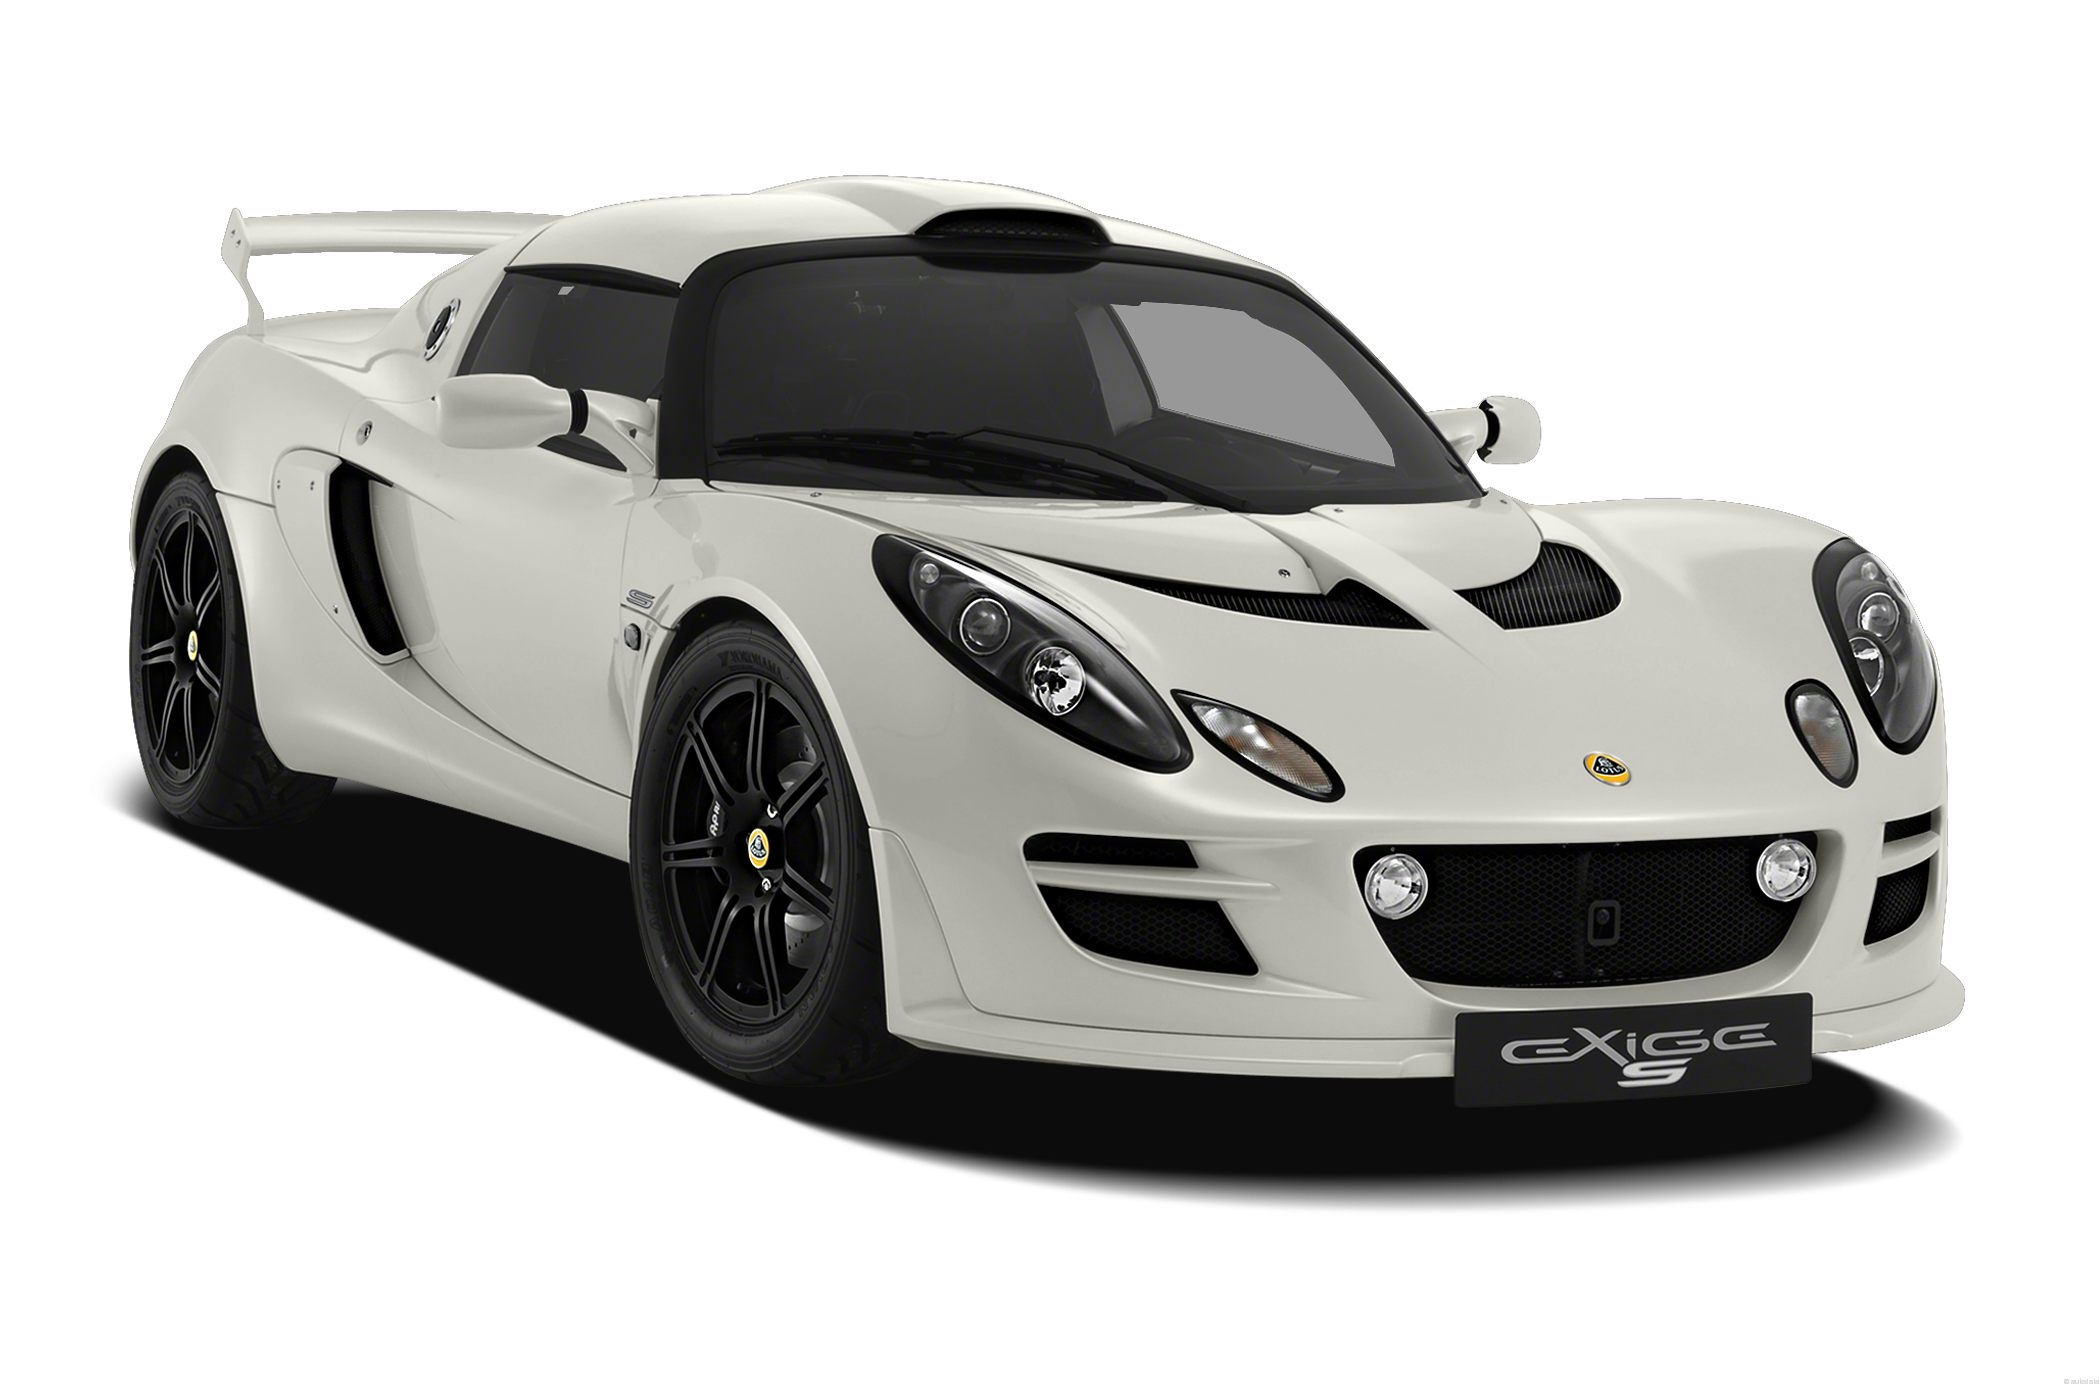 2011 lotus exige 33 car desktop background. Black Bedroom Furniture Sets. Home Design Ideas